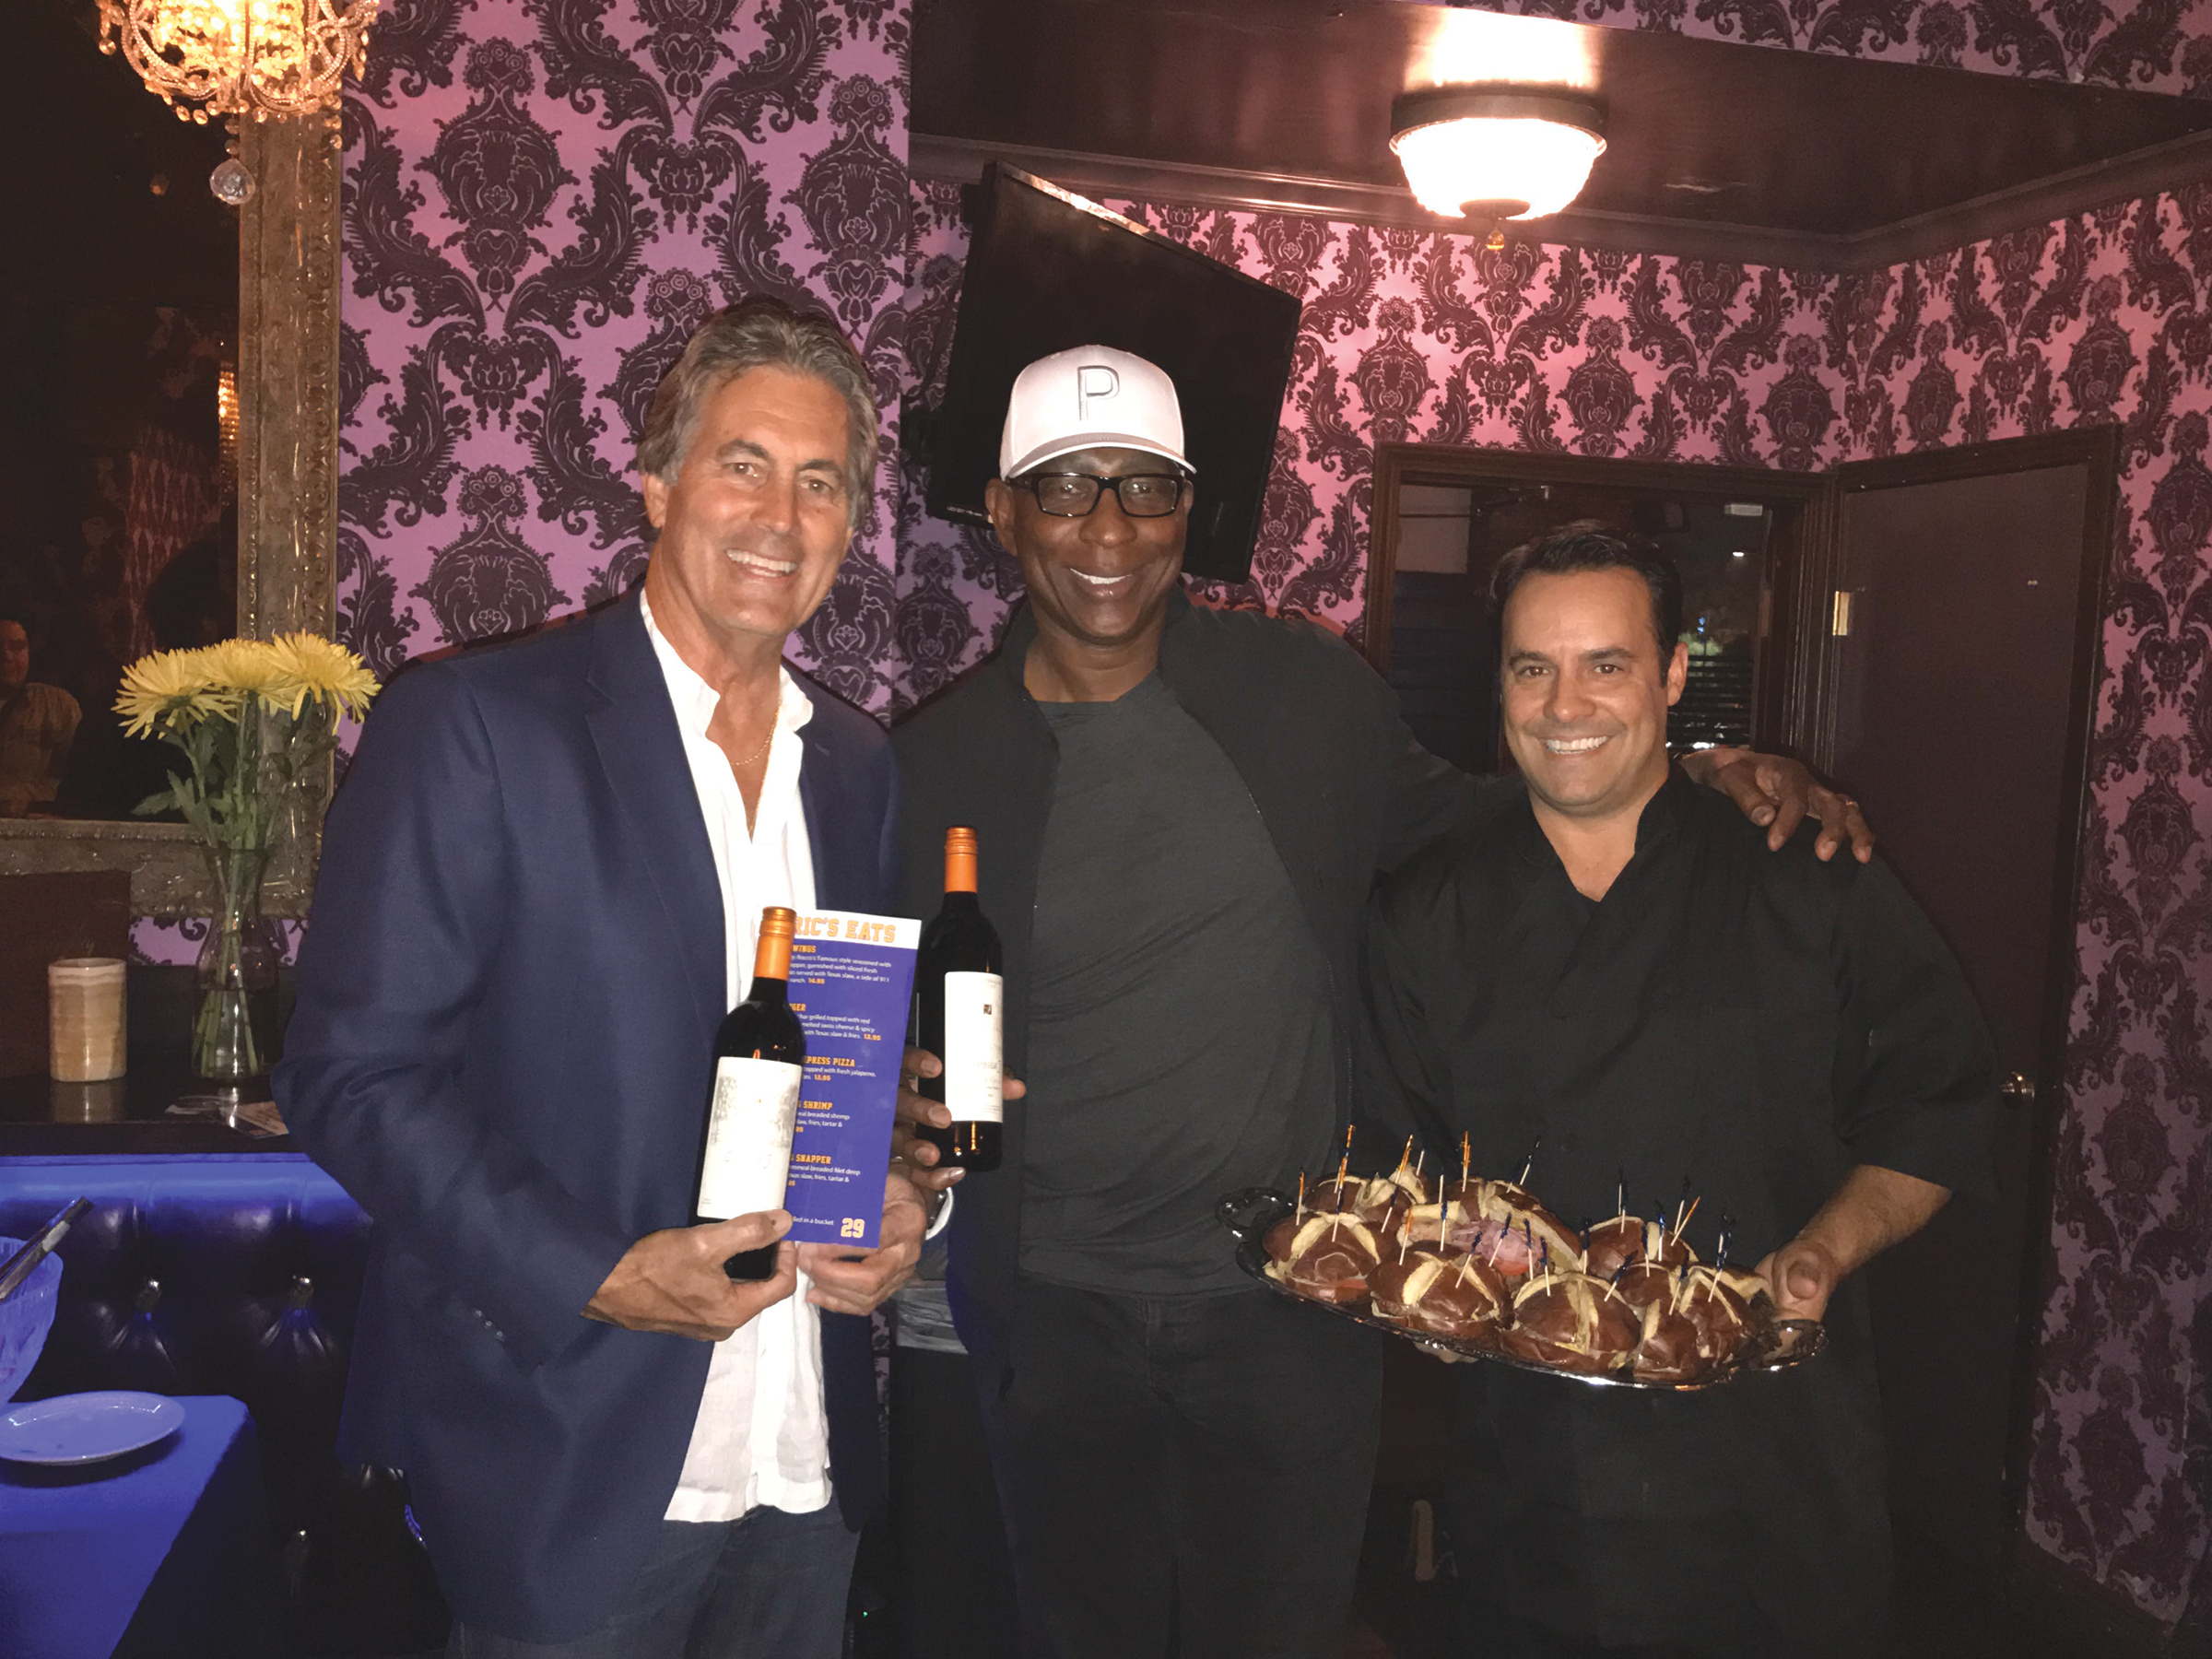 Vince Farragamo, Eric Dickerson and Alex Manos introduce 29 about at Rocco's Tavern in Studio City on Monday Oct. 22 (Cover photo)